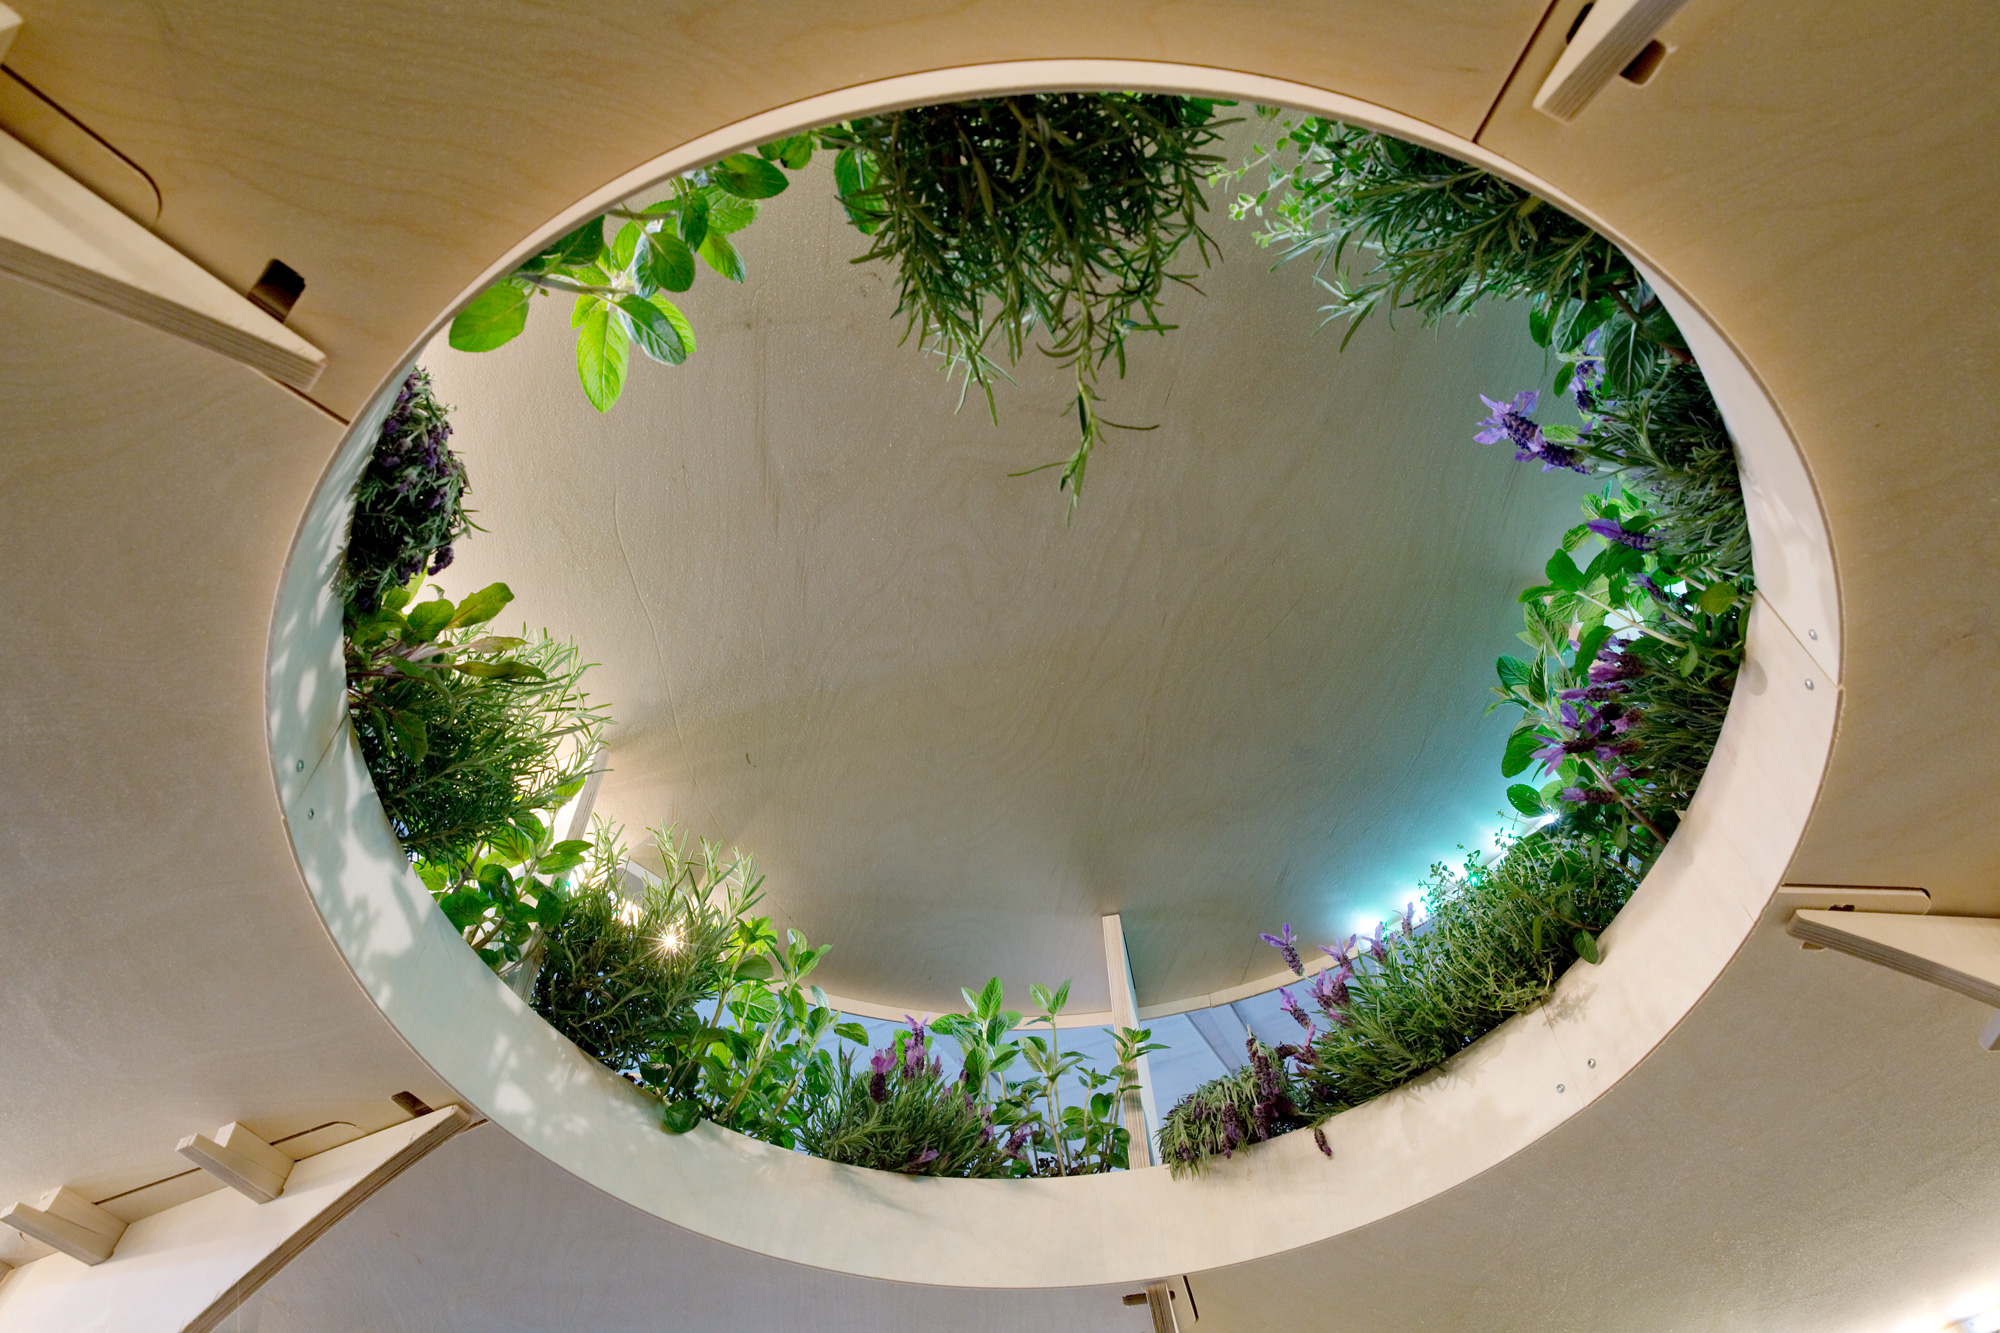 The curved inside of a multilevel, wooden plant stand filled with lush greenery.